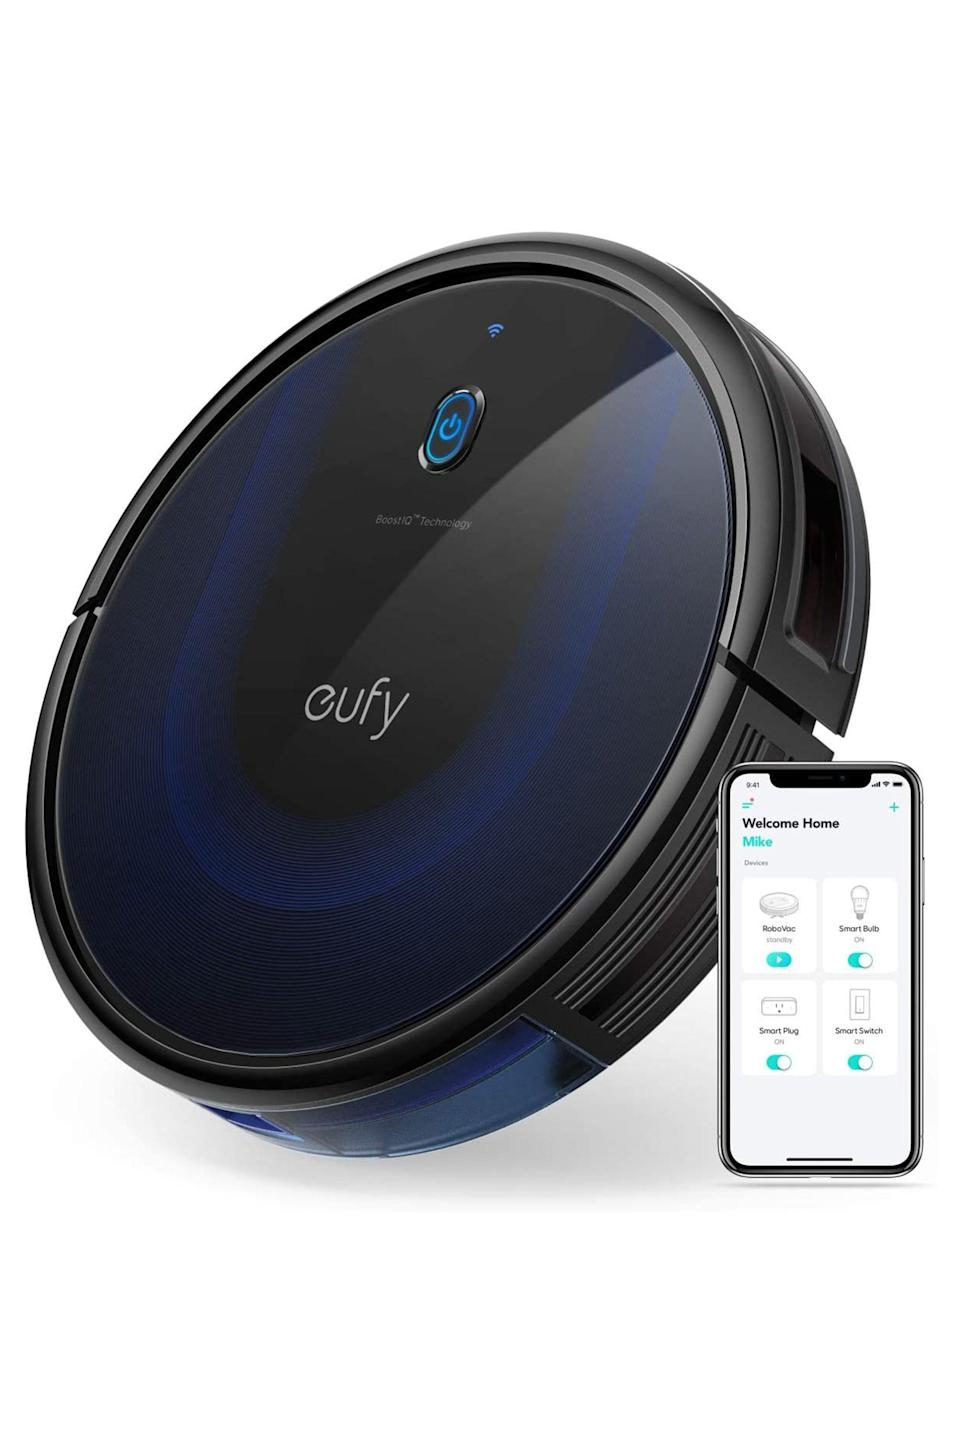 """<p><strong>eufy by Anker</strong></p><p>amazon.com</p><p><strong>$175.99</strong></p><p><a href=""""https://www.amazon.com/dp/B07RGDFZ5Q?tag=syn-yahoo-20&ascsubtag=%5Bartid%7C10051.g.13053688%5Bsrc%7Cyahoo-us"""" rel=""""nofollow noopener"""" target=""""_blank"""" data-ylk=""""slk:Shop Now"""" class=""""link rapid-noclick-resp"""">Shop Now</a></p><p>It's hard to come by a list of best robot vacuums online (written by experts who actually tested hundreds of models) where eufy's RoboVac 15C MAX isn't included as a budget-friendly mention. The RoboVac 15C MAX has wifi and Alexa voice connectivity, which makes it easy breezy to set up and use. Reviewers love how it delivers an impressive clean with strong suction and self-charges after a clean. </p>"""